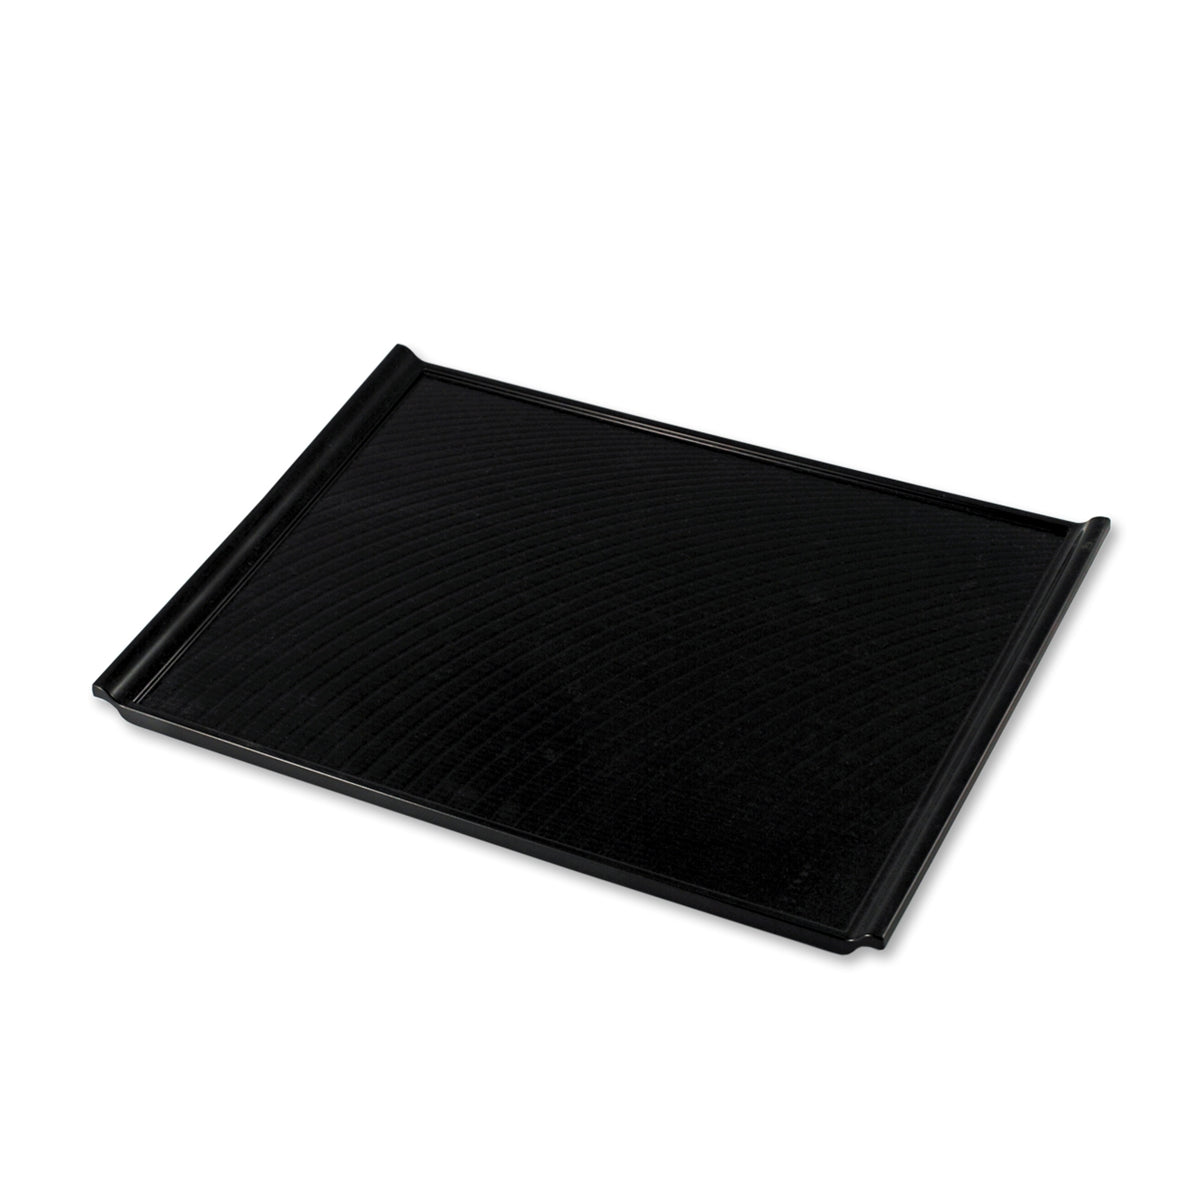 "Non-slip Black Rectangular Serving Tray with Handles 16.81"" x 12.2"""